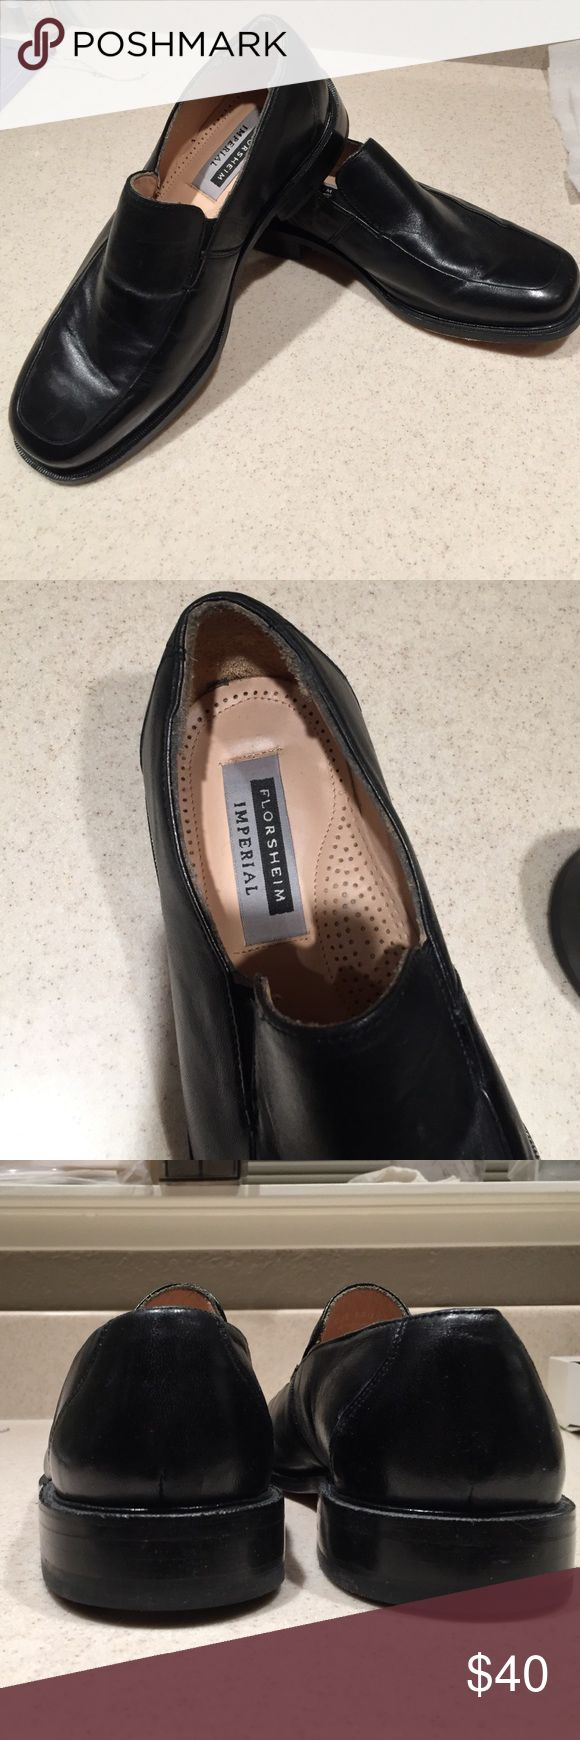 Men's Florsheim Imperial black leather shoes Black loafers are size 8.5 3E. Like new condition. Florsheim Shoes Loafers & Slip-Ons